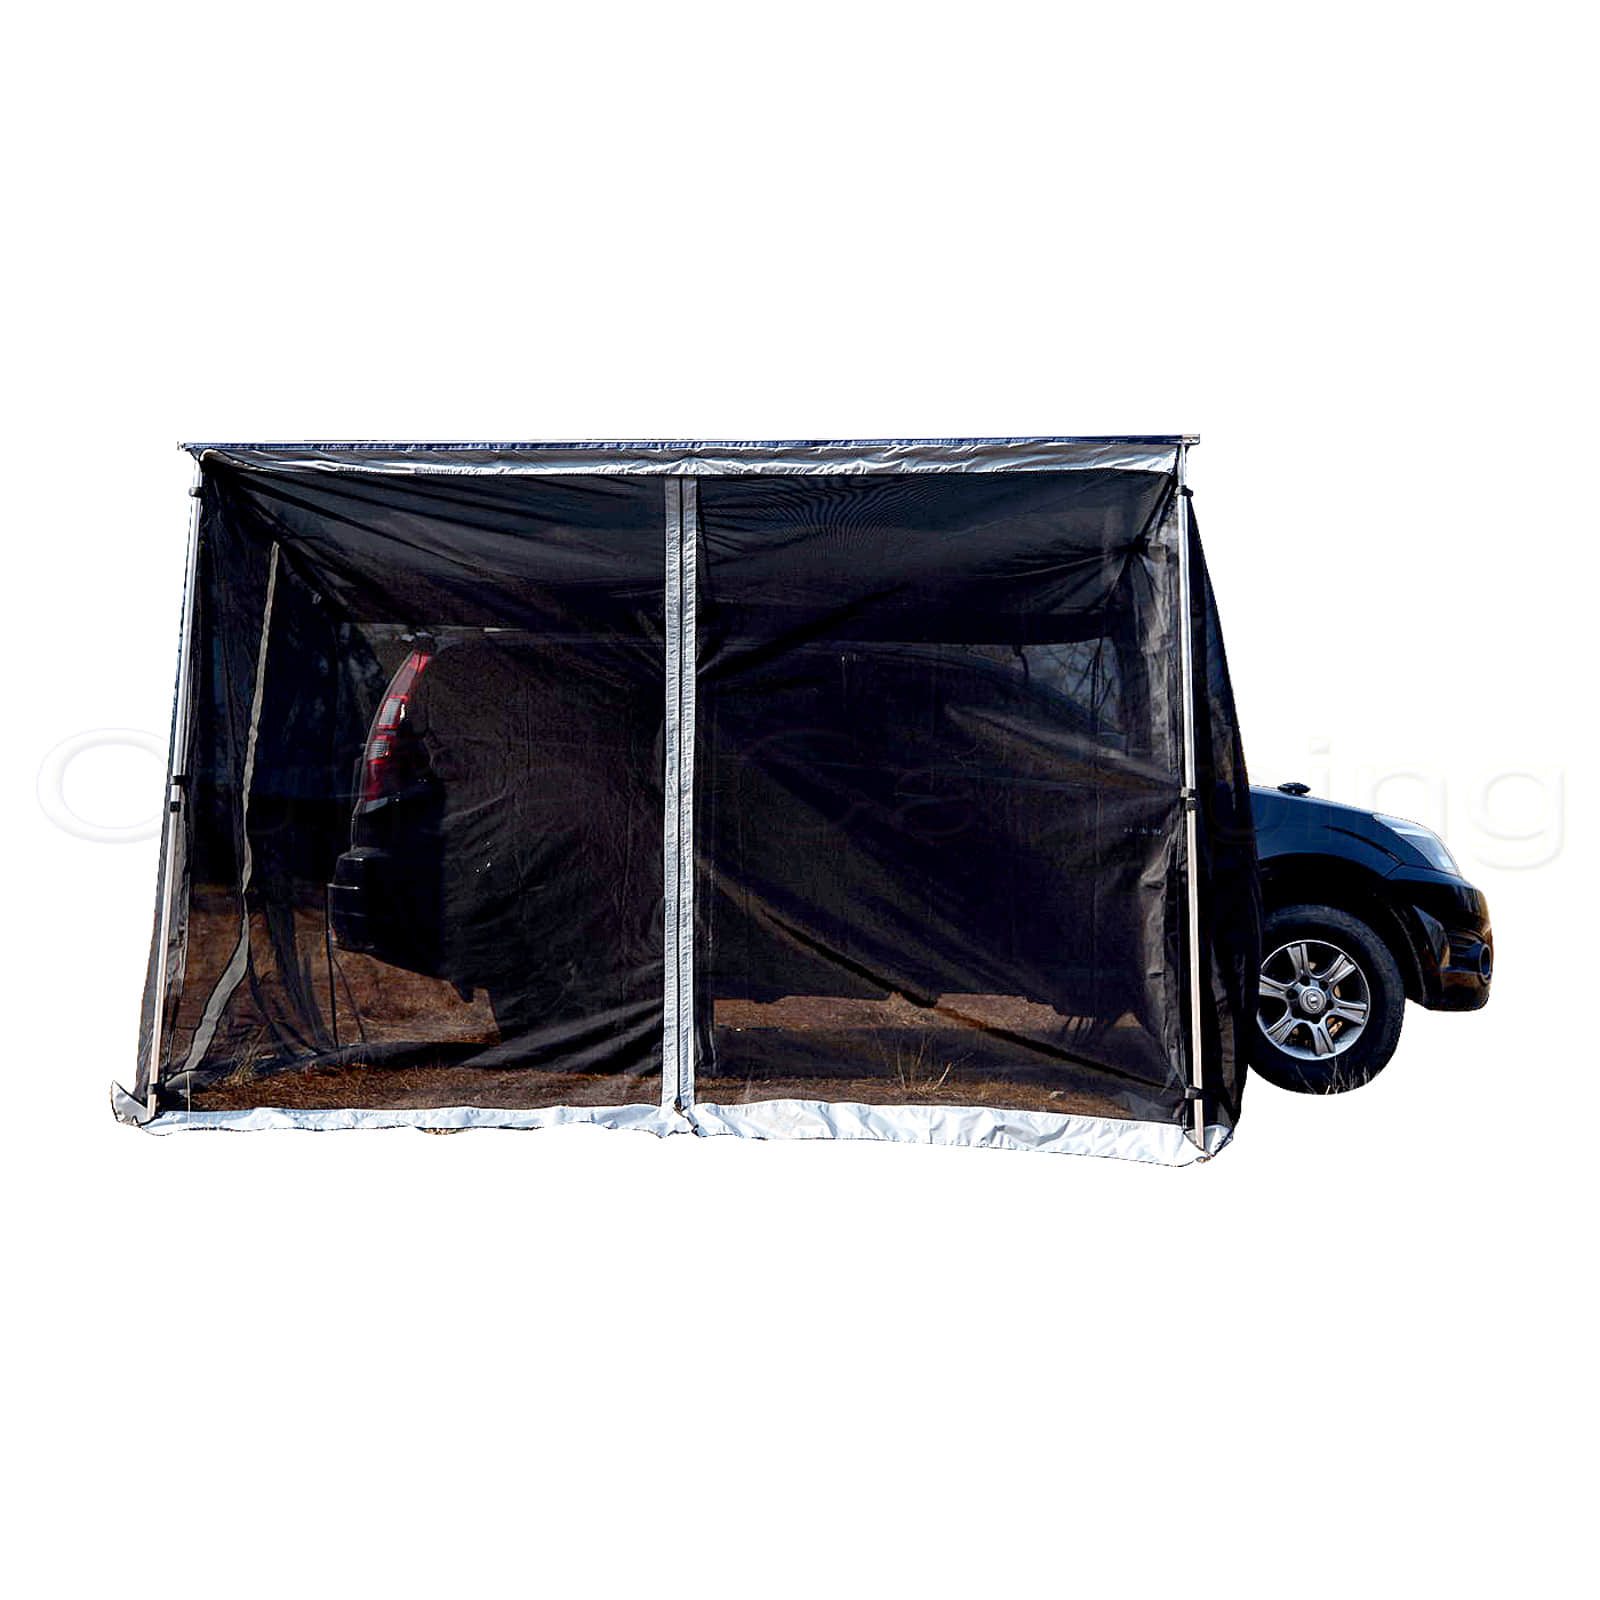 New 4wd Mosquito Net Mesh Car Side Awning 2m x 2m Tent Outdoor Camper Trailer